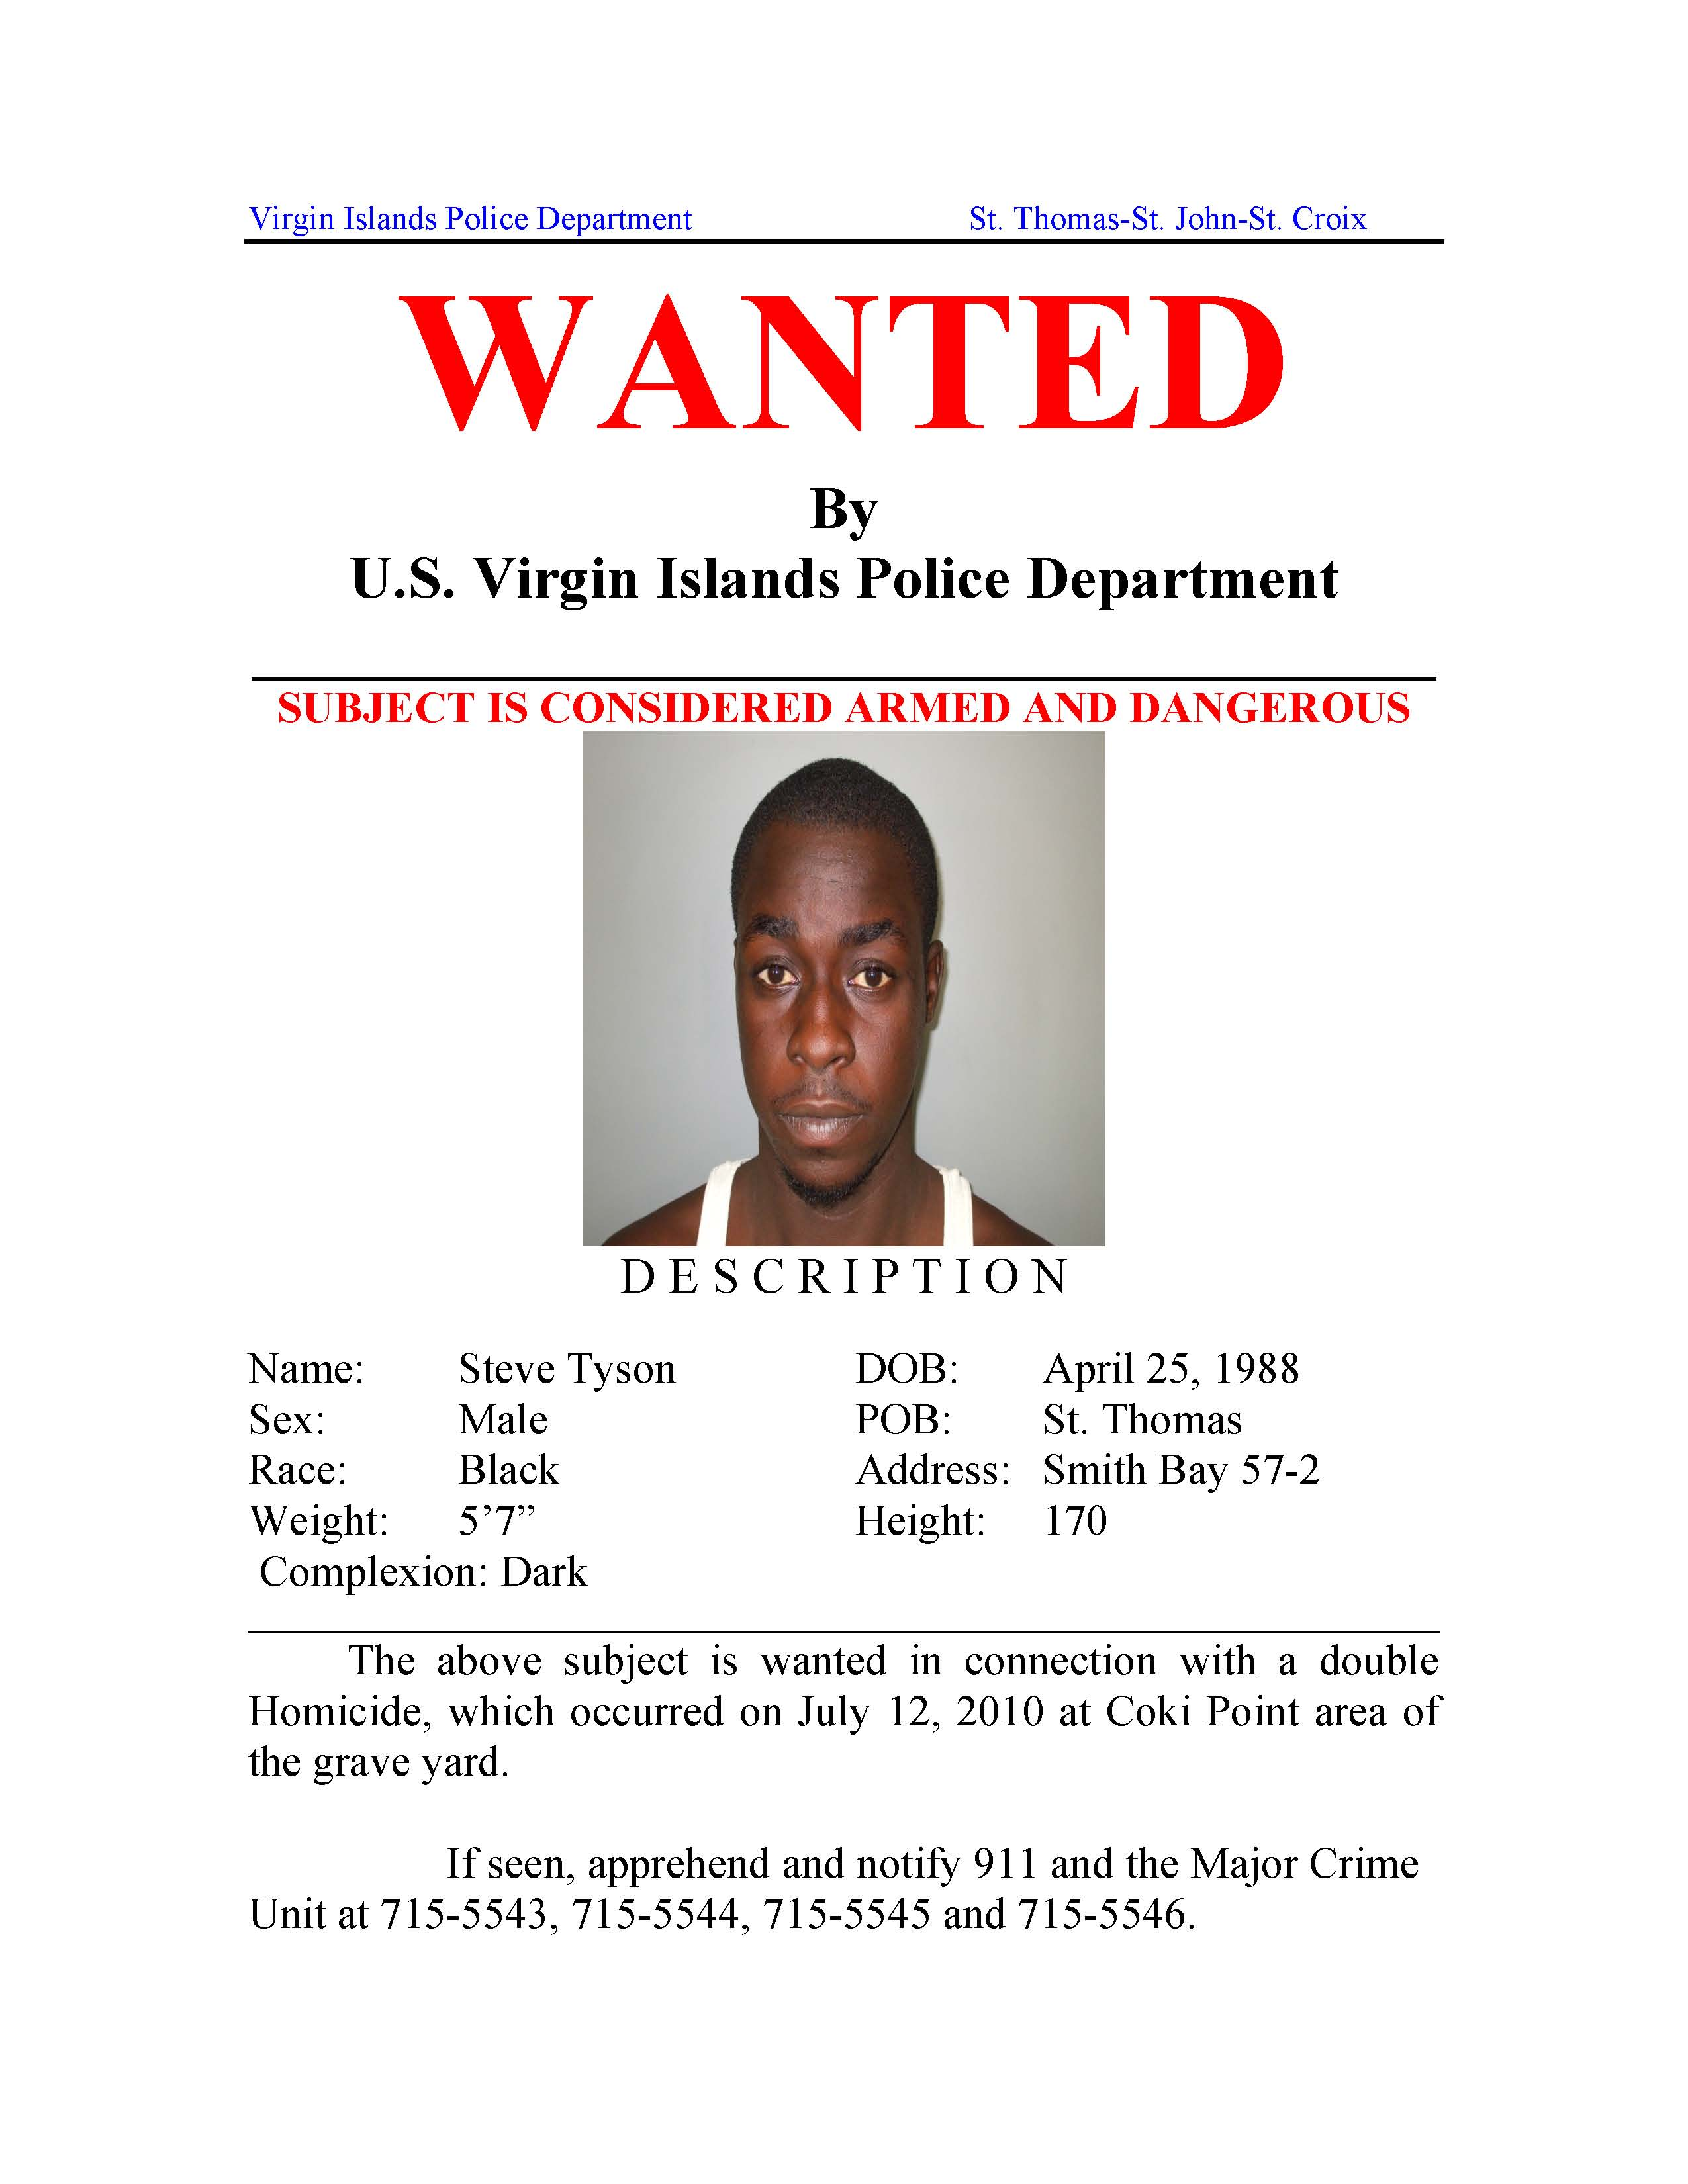 Police Issue Wanted Poster for Double Homicide Suspect | St ...